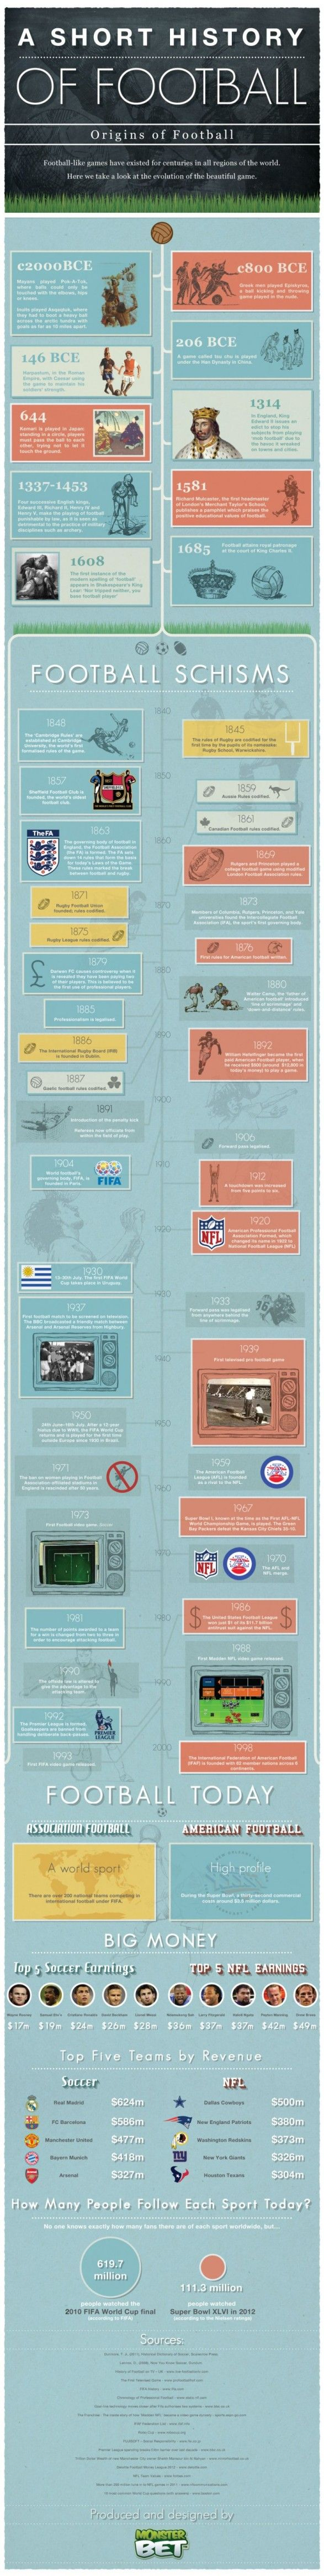 InfoFriday: A Brief History of Football...might use this for football fans in the classroom!